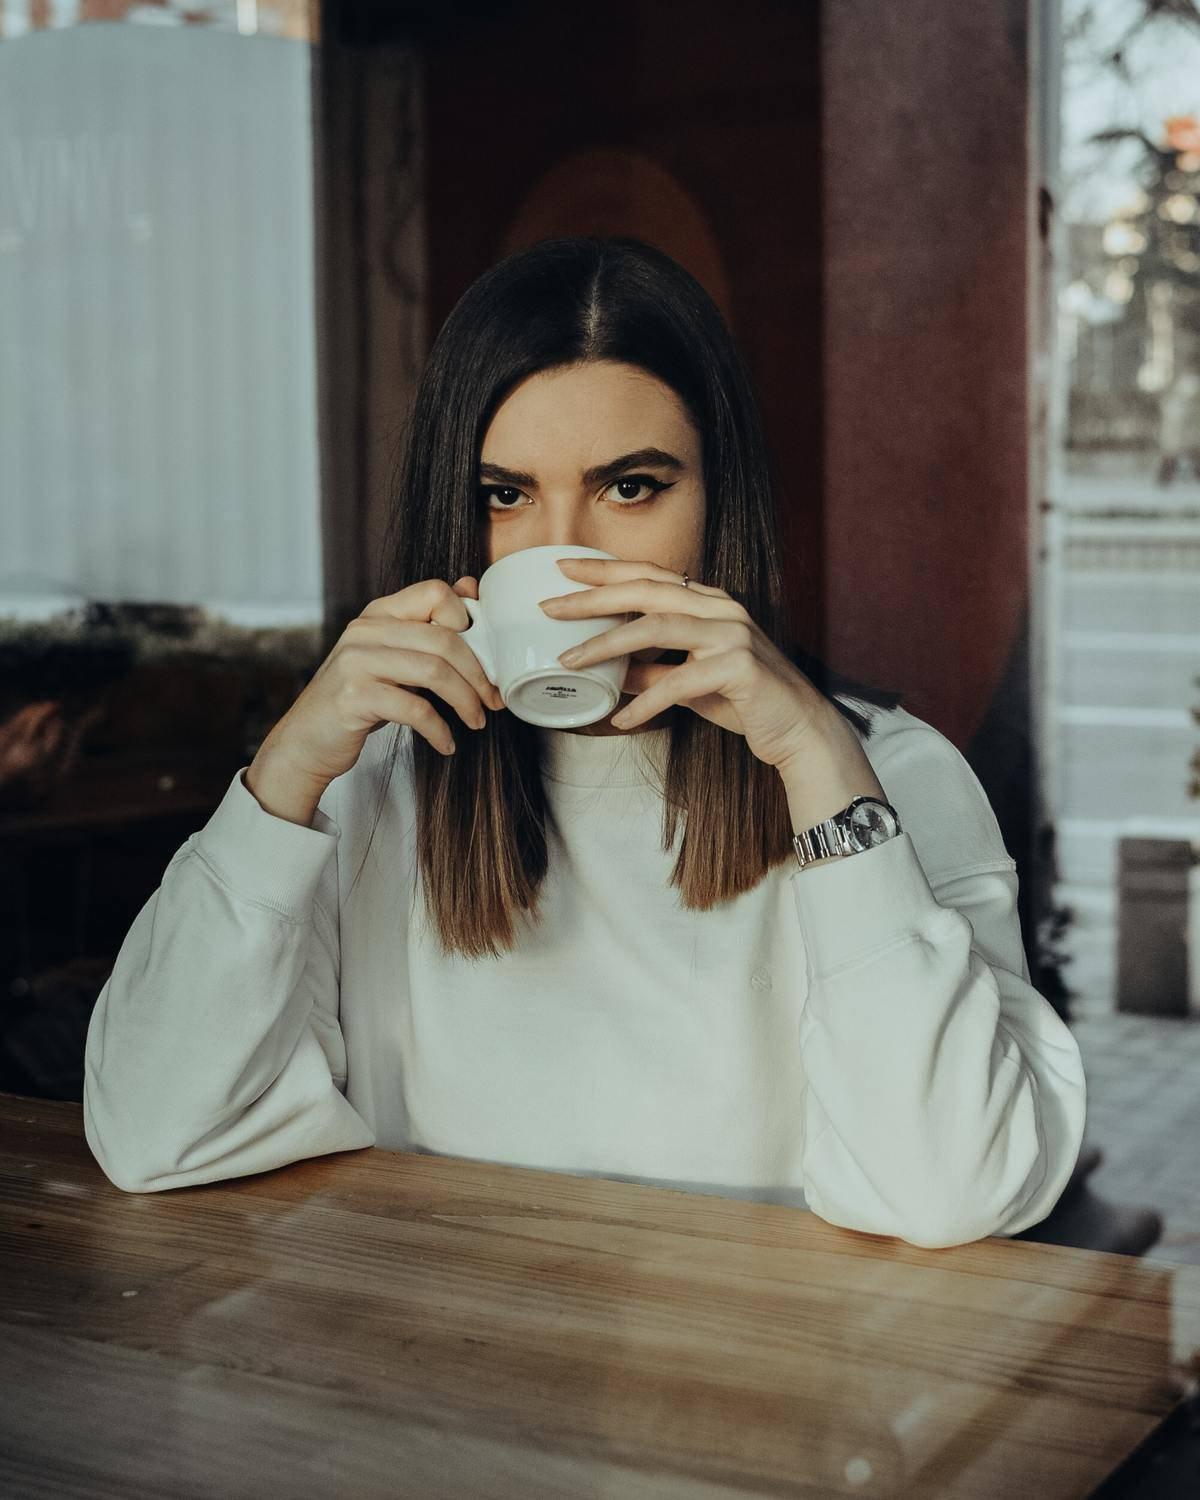 woman drinking cup of coffee and looking into camera